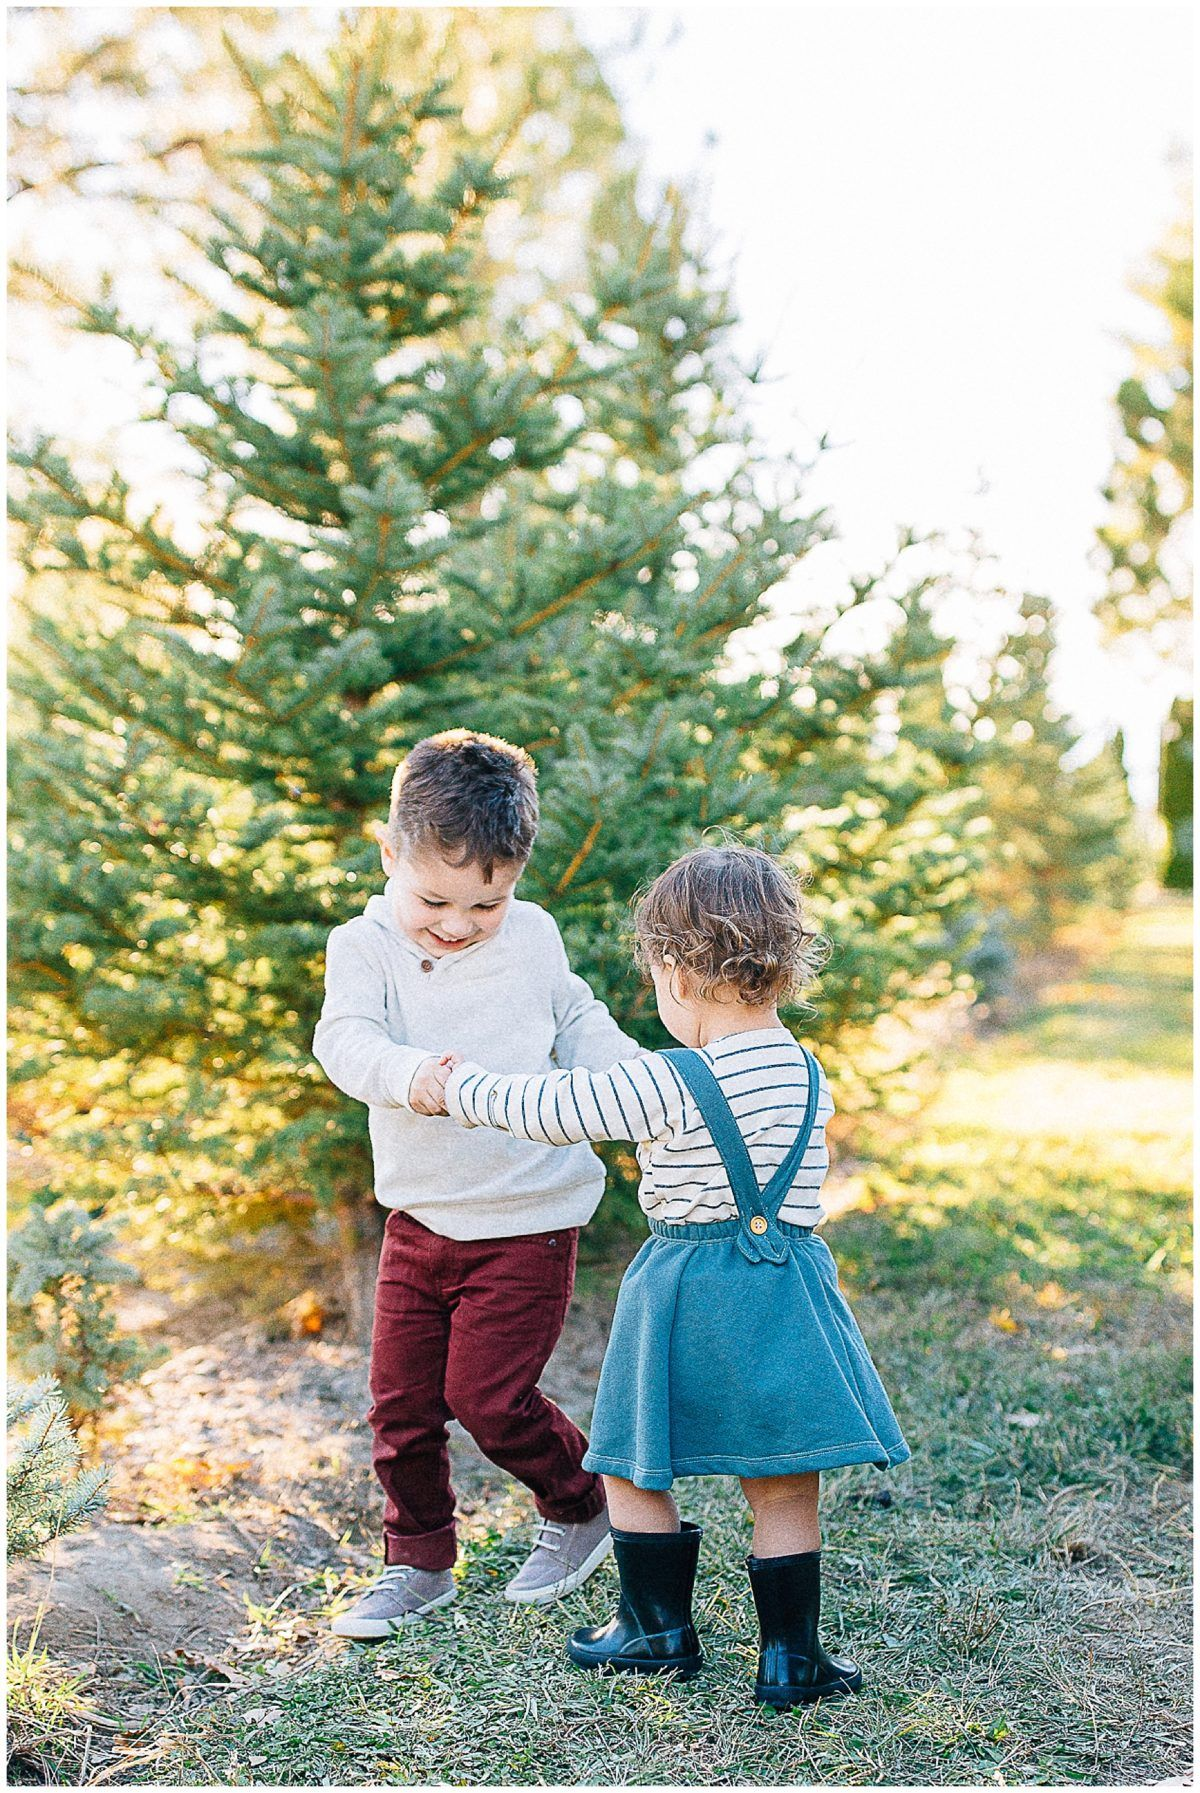 Baird Tree Farm Pictures Utah Family Photographer Truly Photography Family Tree Photo Utah Family Photographer Tree Farm Pictures